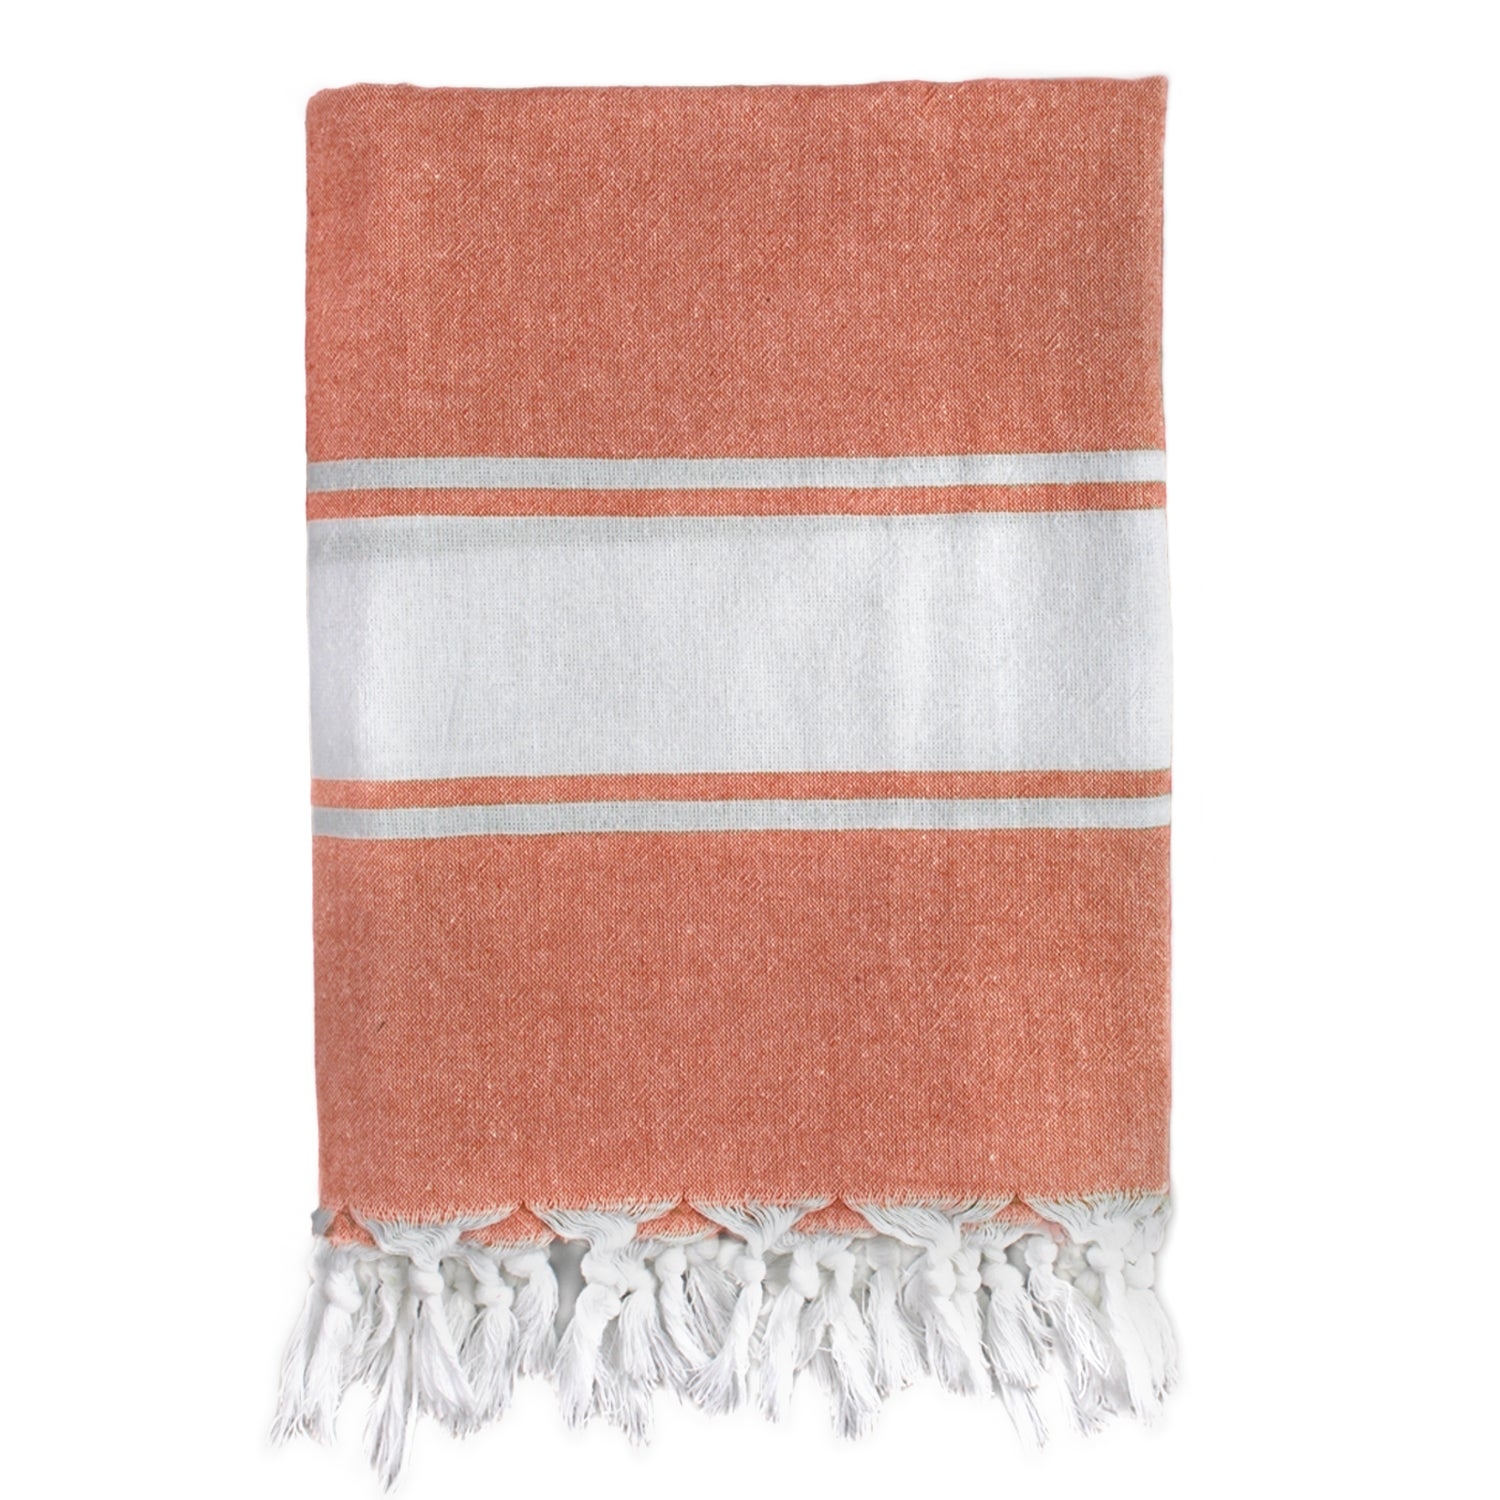 Classic Orange Stripe Turkish Fouta Bath/ Beach Towel (Orange Materials 100 percent Turkish Cotton Care instructions Machine wash cold. Gentle cycle with like color. No bleach mild detergent. Tumble dry low. Dimensions 36 inches x 67 inches The digital